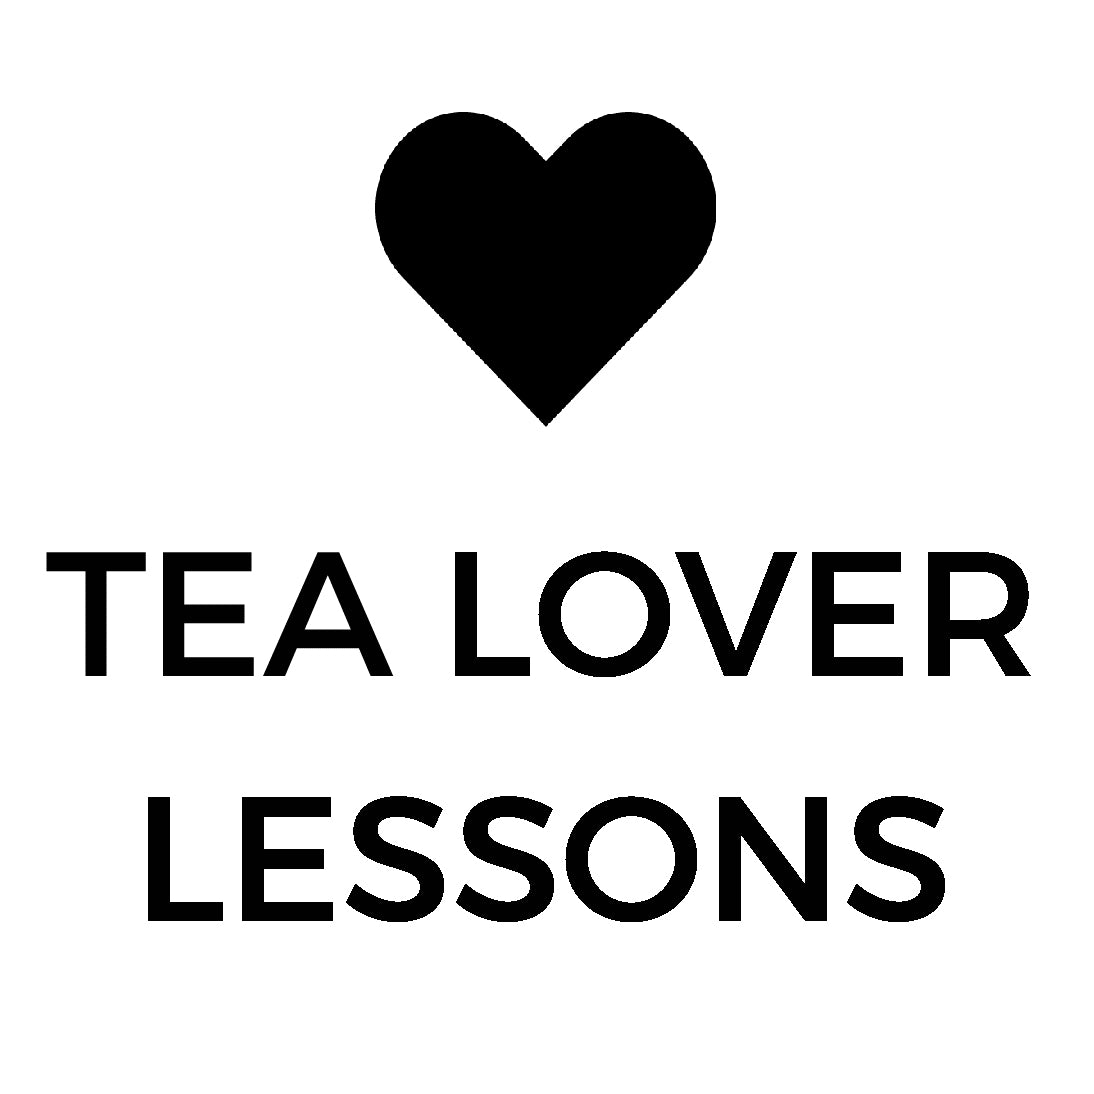 Tealover Lessons